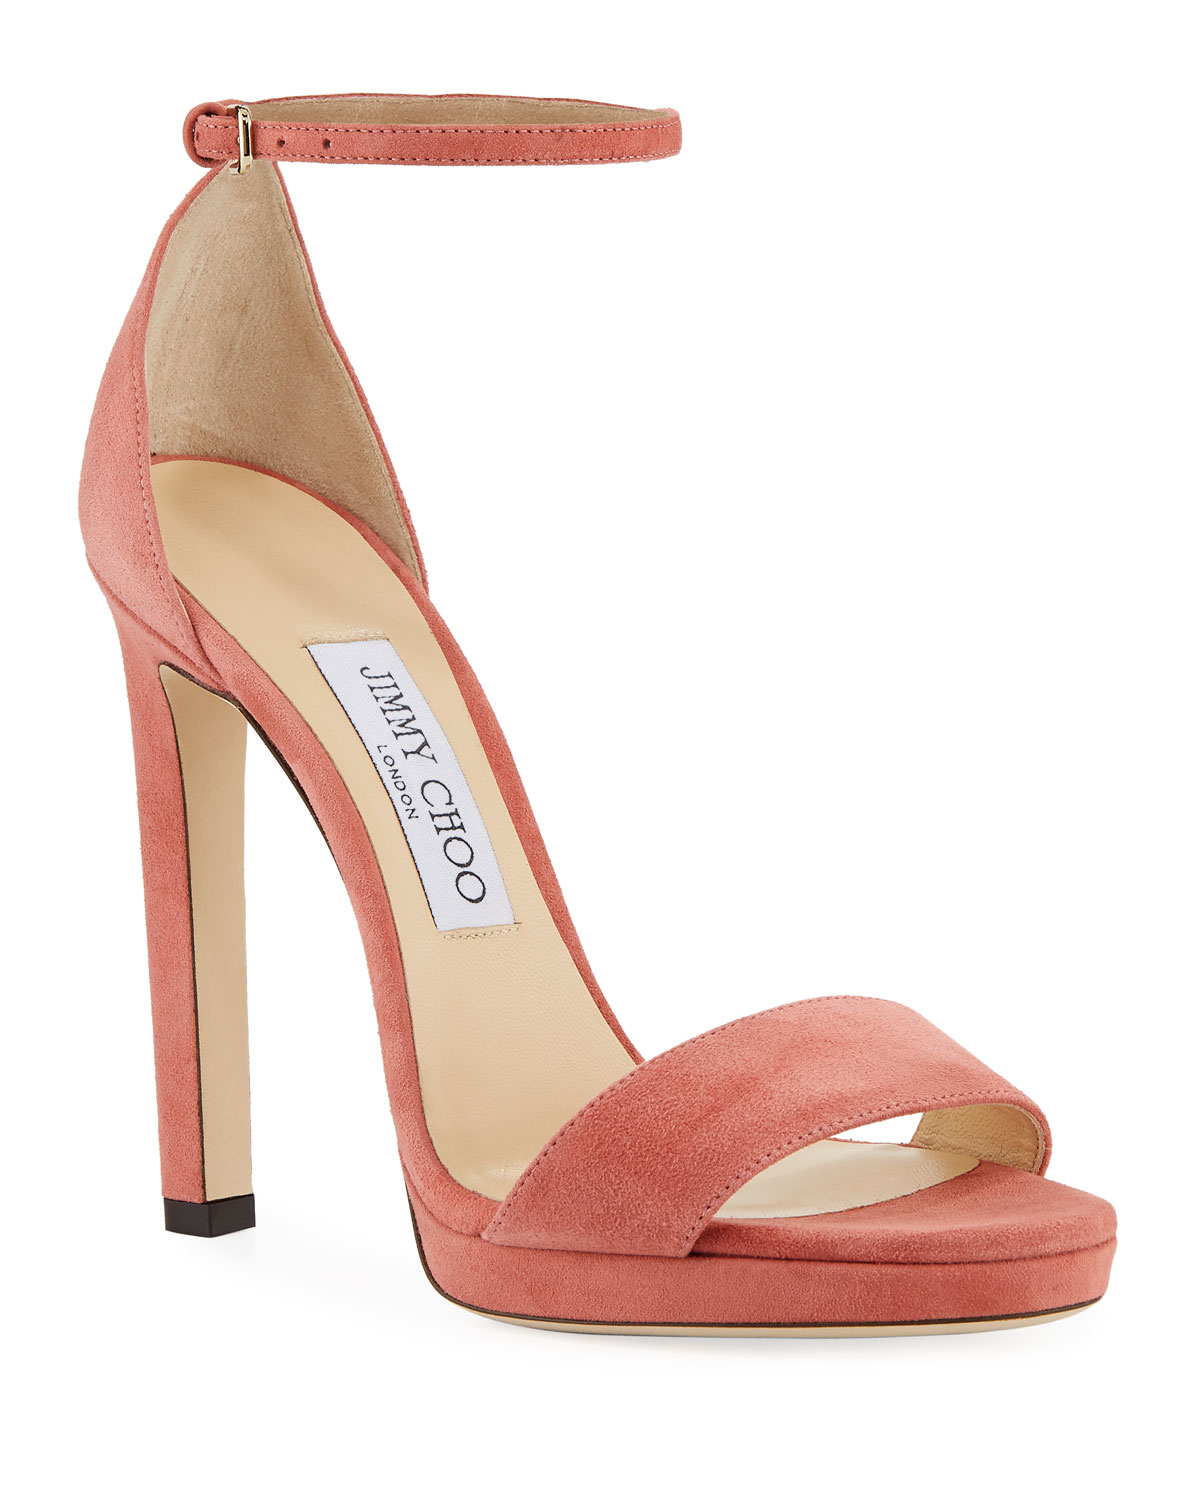 8162b481e6e5 Jimmy Choo Misty Suede Platform Sandals